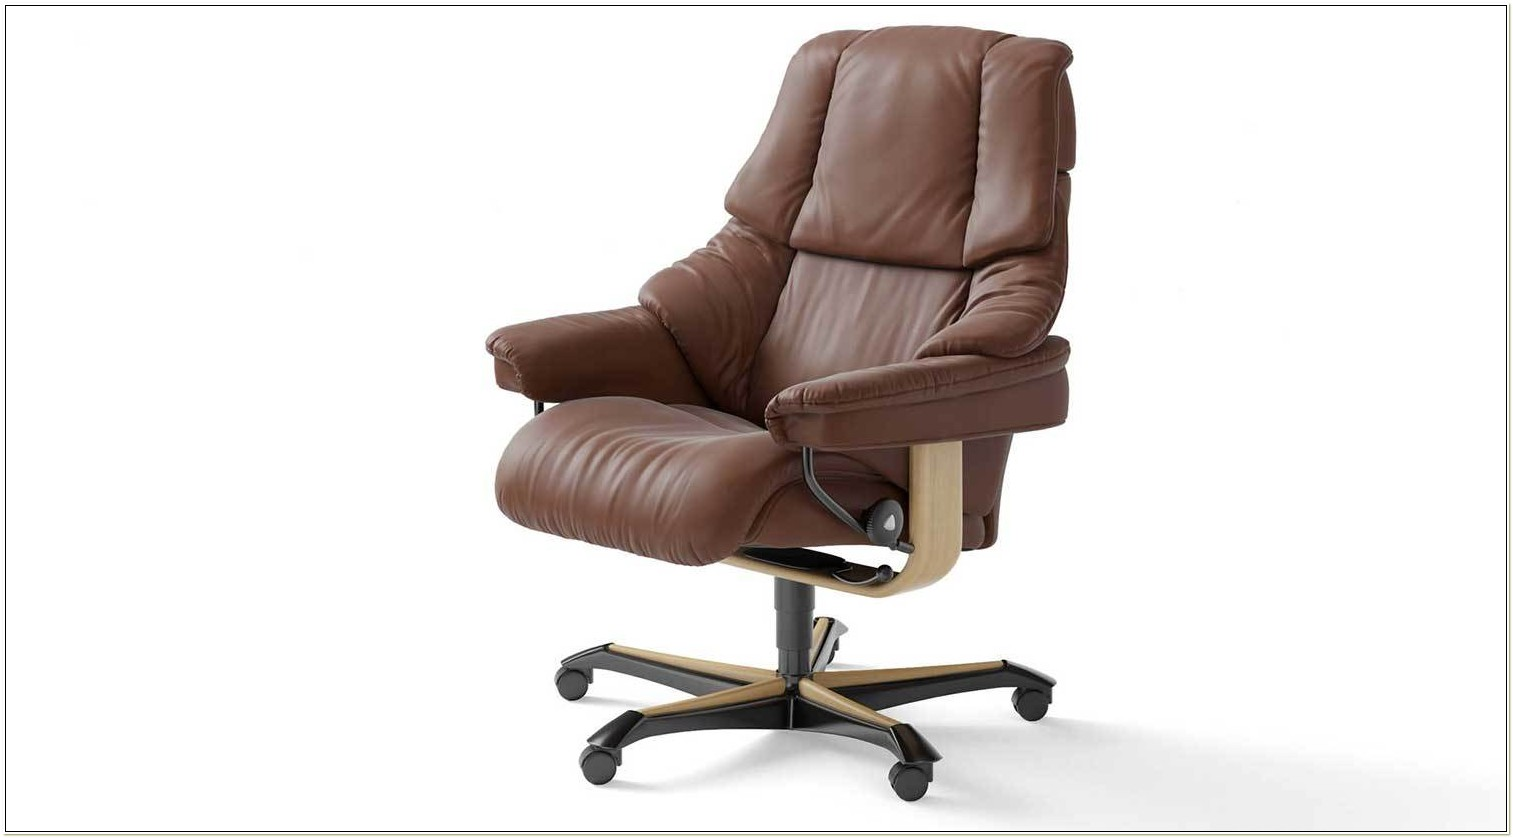 Stressless Reno Office Chair Uk